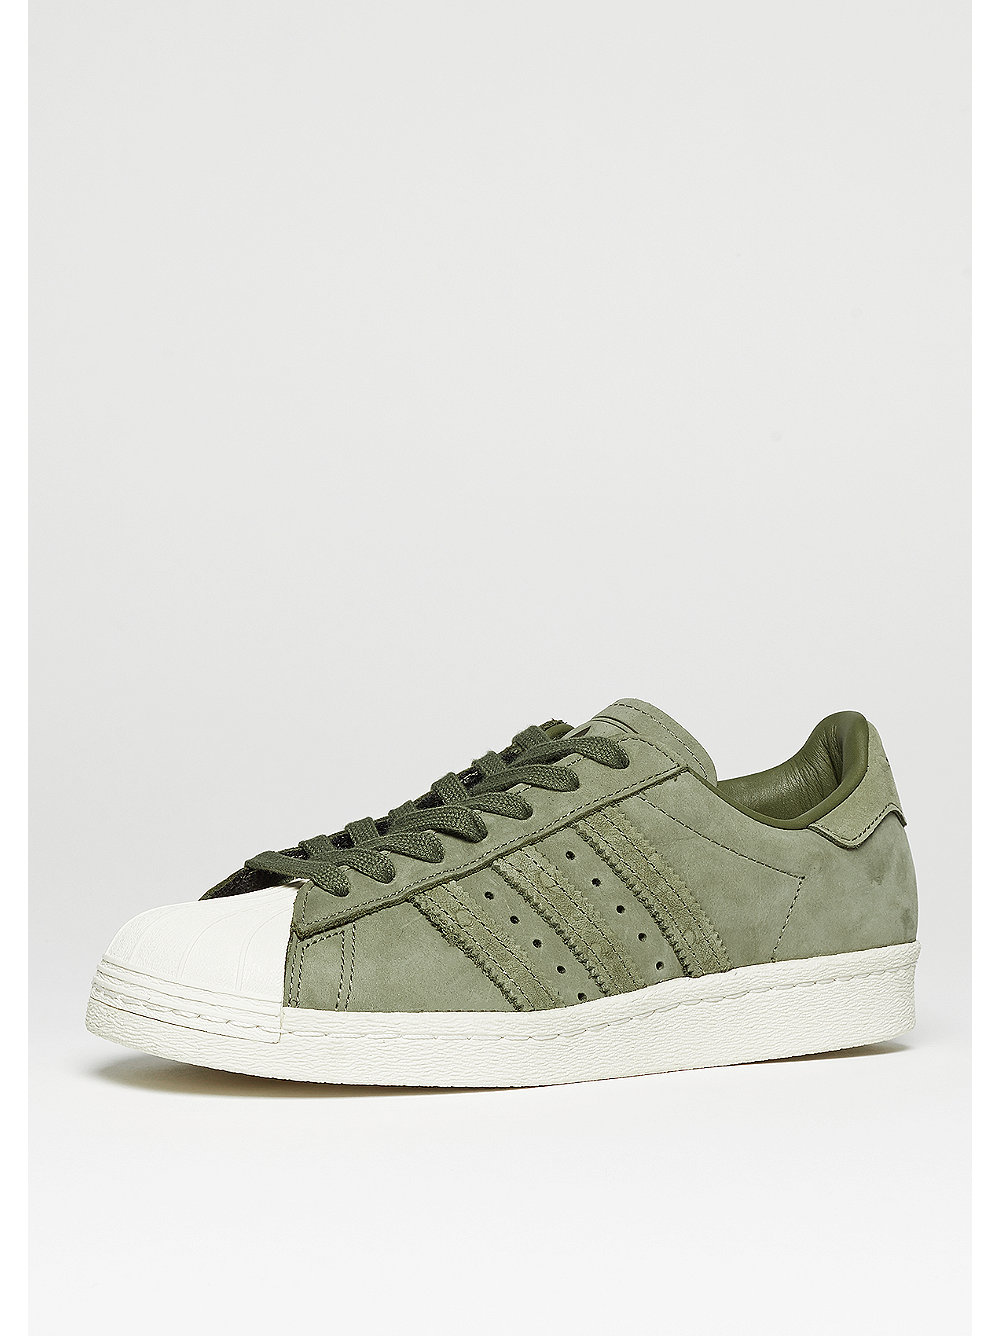 adidas superstar khaki snipes